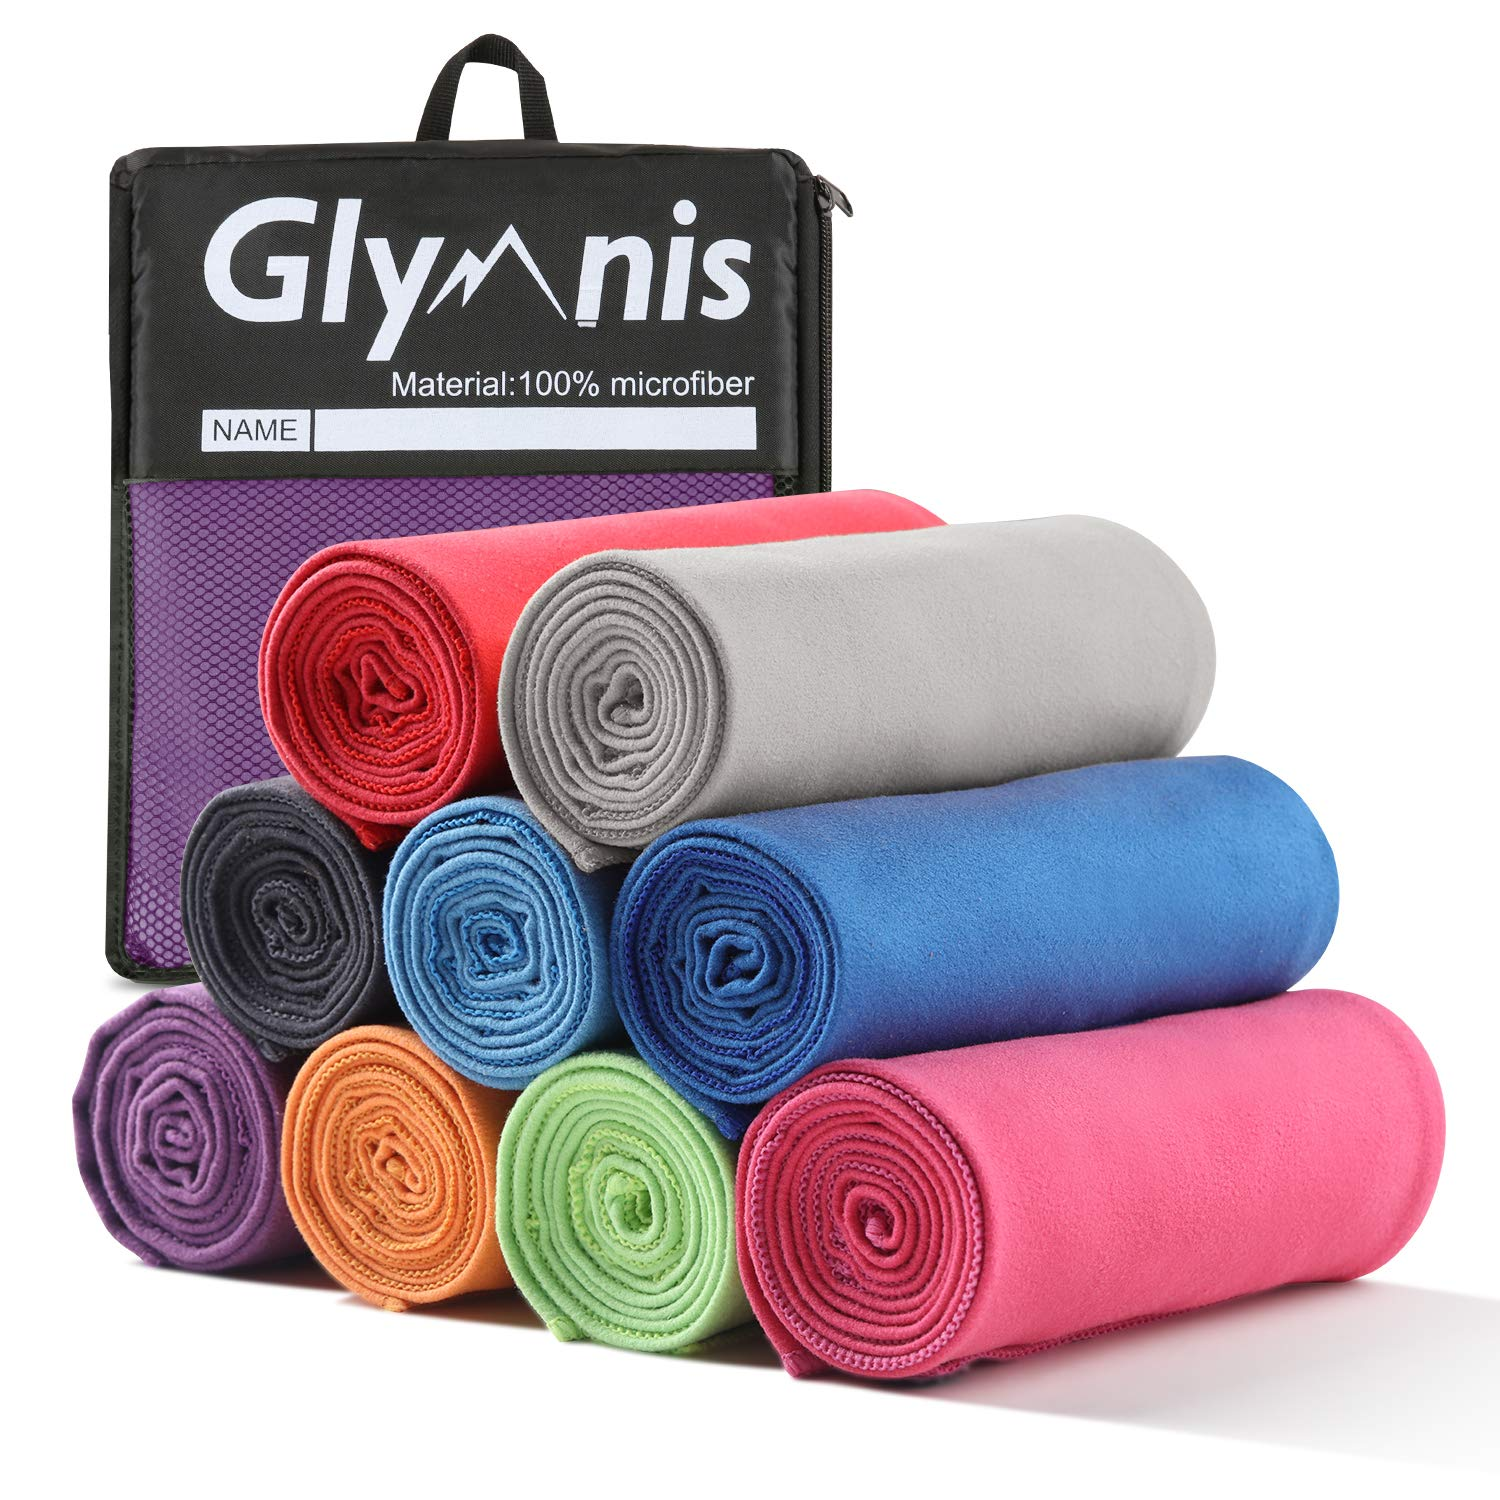 Purple L& xFF1A;31.5 x 79 Inch (1 Pack) Glymnis Microfiber Towel Beach Travel Yoga Towel with Ultra Absorbency for Gym Sports Fitness Bath Camping Swimming